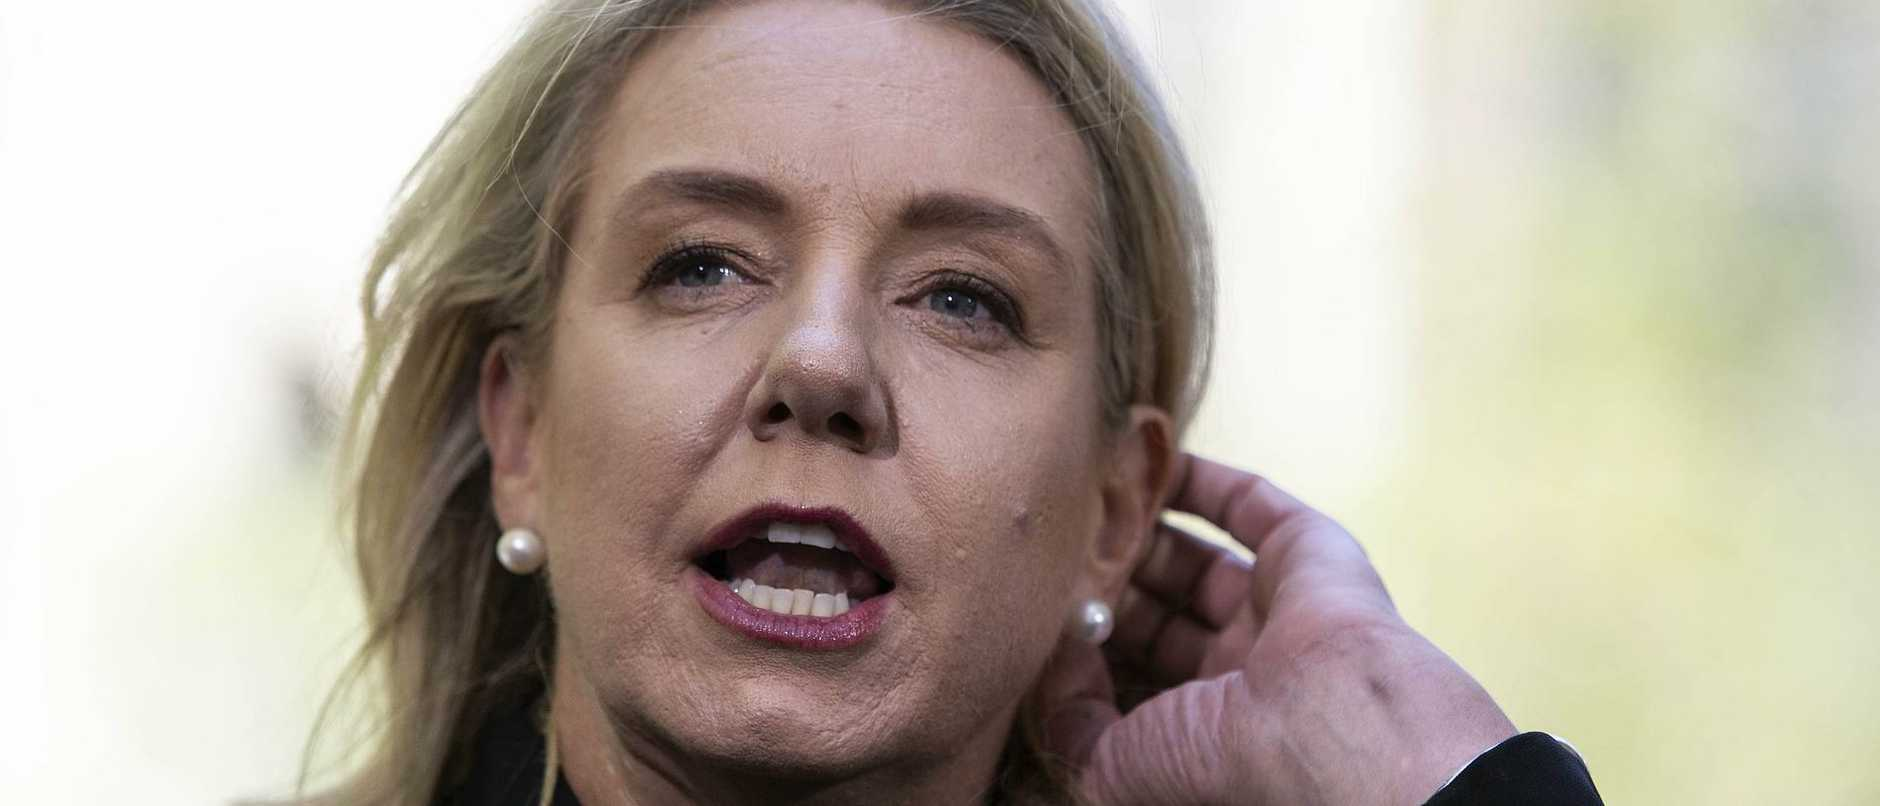 Bridget McKenzie has spoken out after falling on her sword over the sports grants scandal. But it's what she didn't say that spoke volumes.